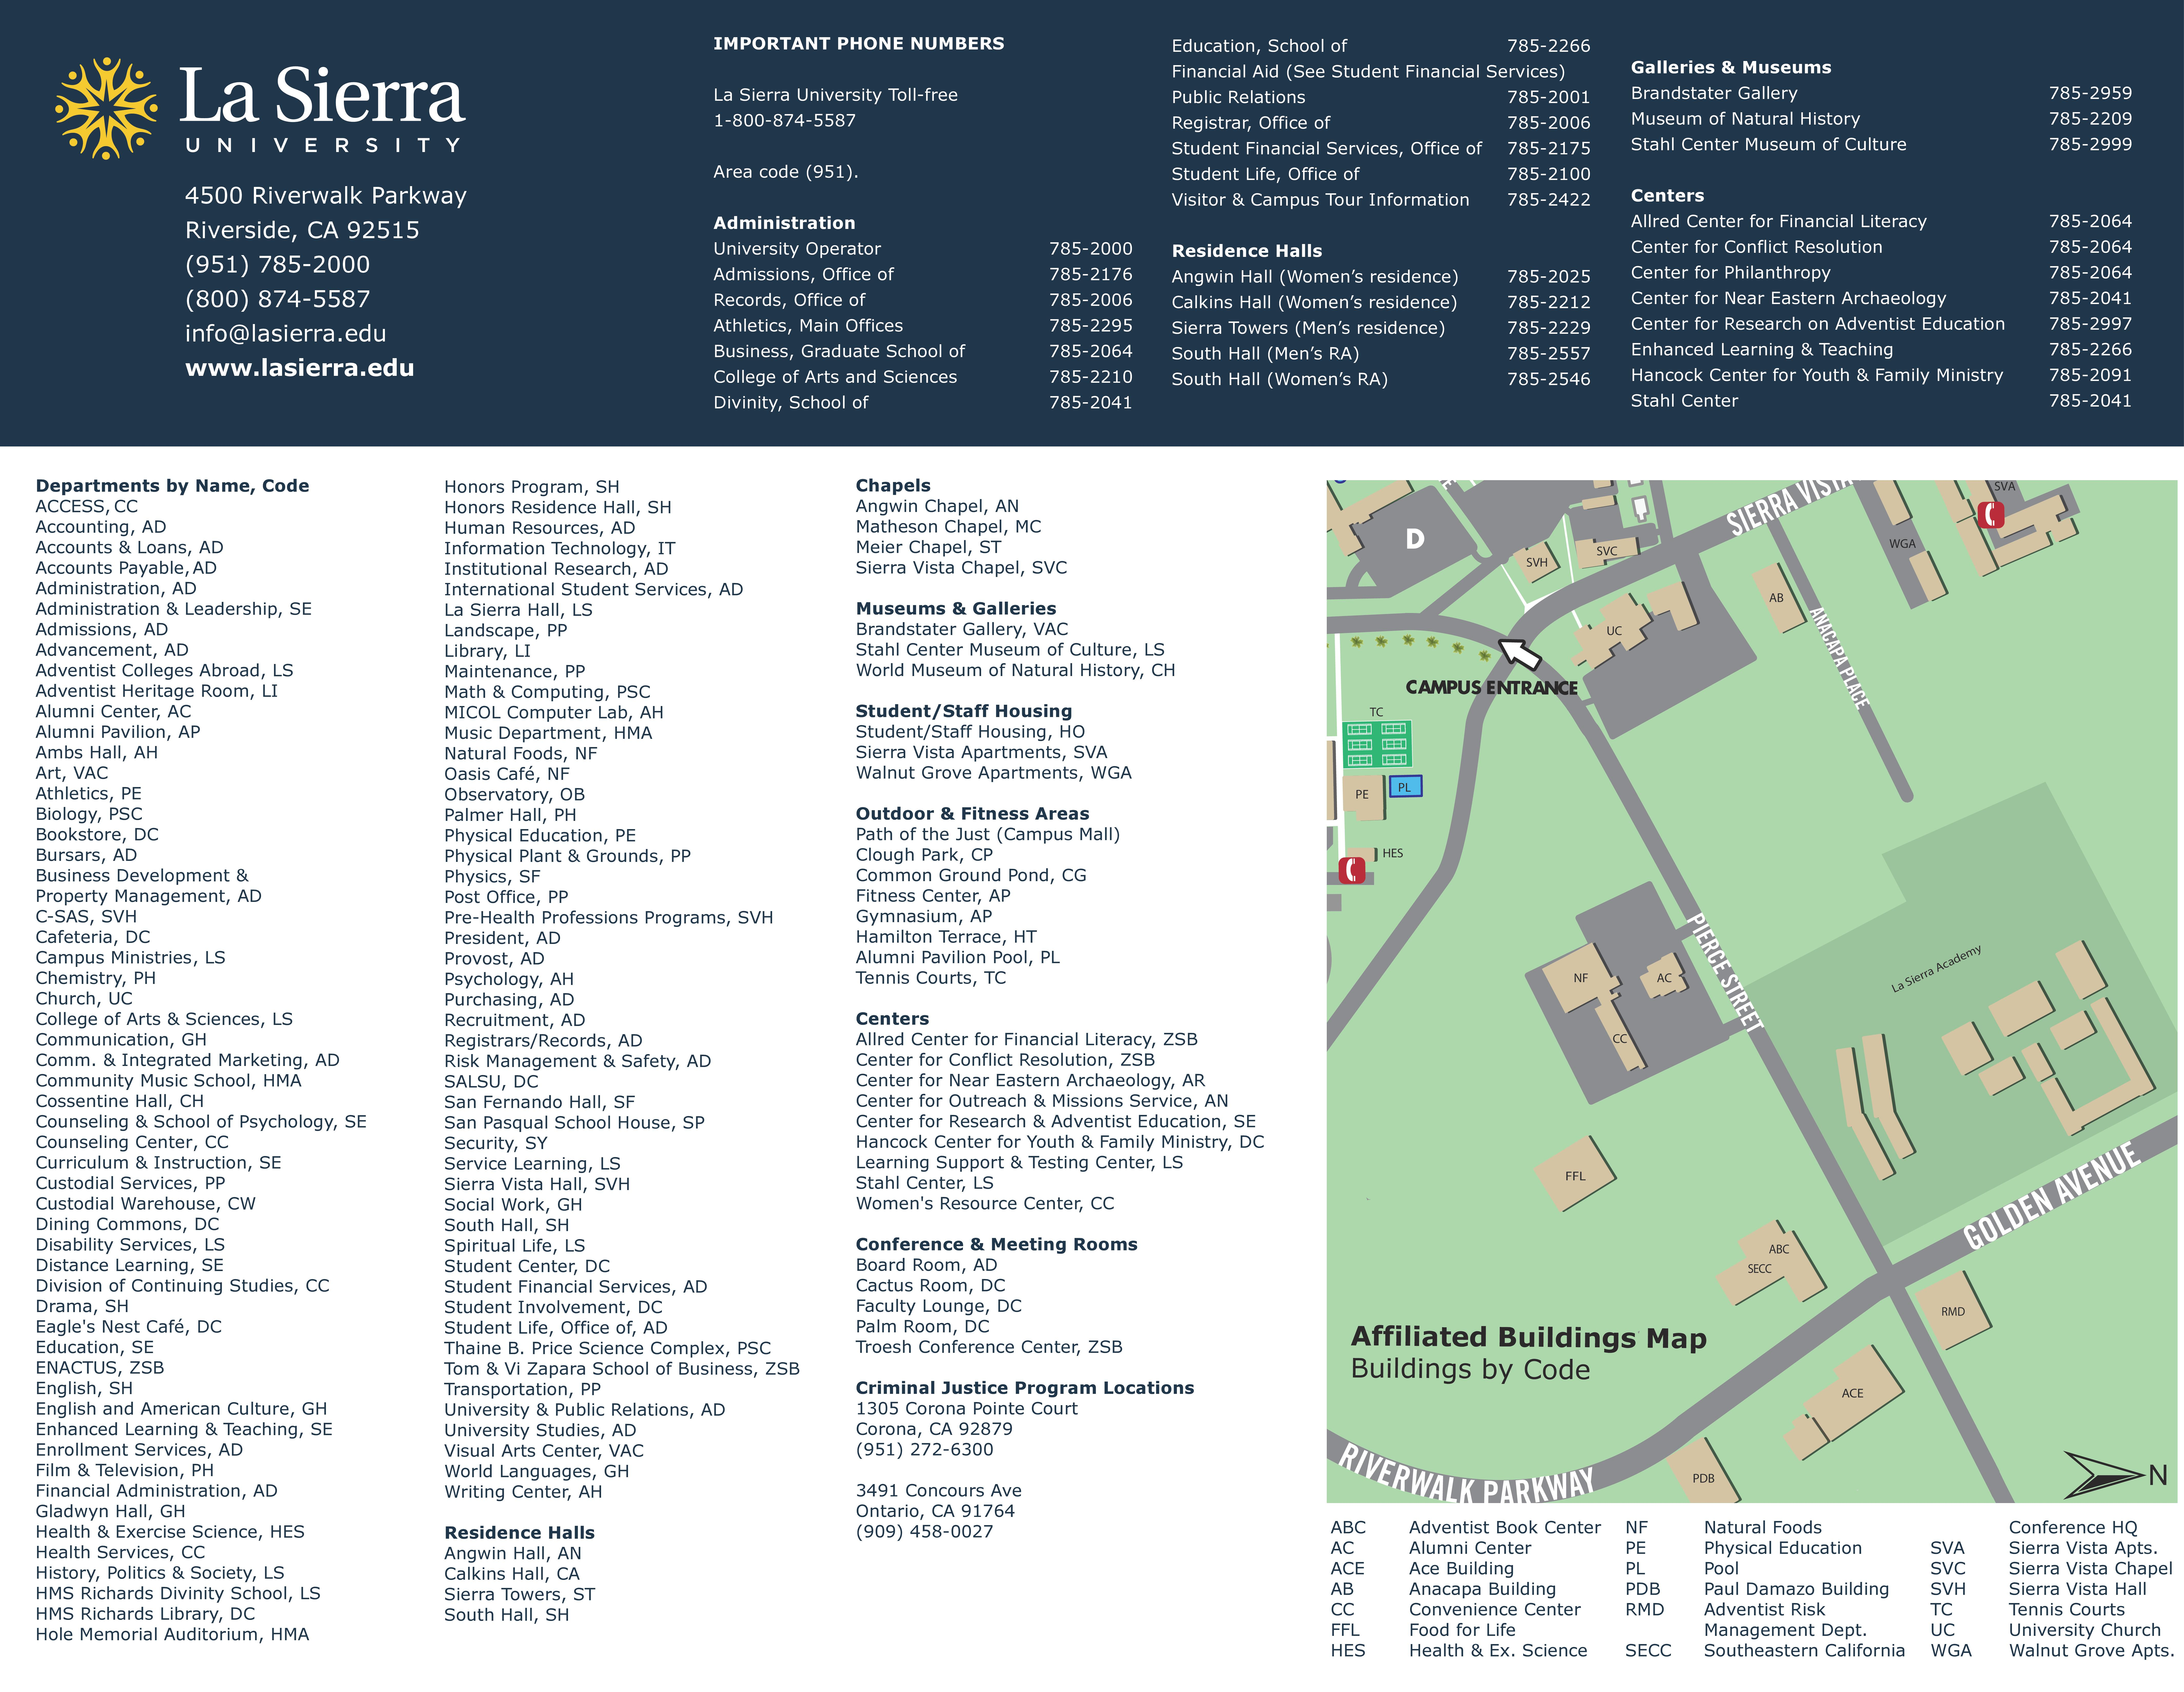 Riverside Campus Map.Campus Map Office Of Advising Career Success La Sierra University